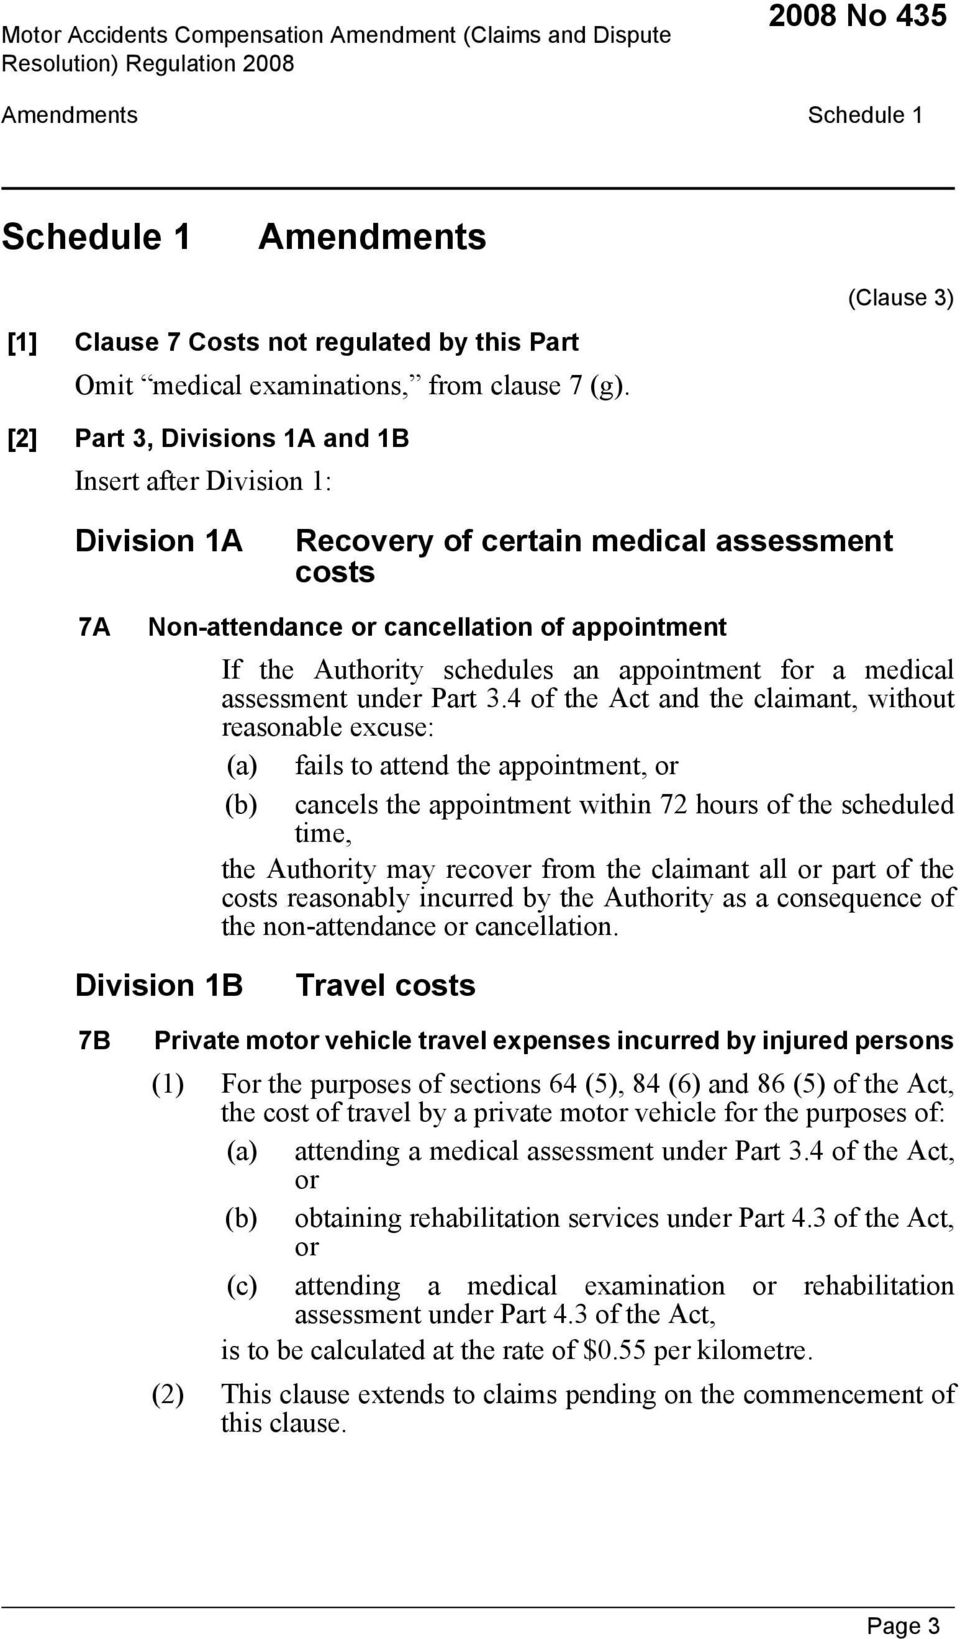 (Clause 3) [2] Part 3, Divisions 1A and 1B Insert after Division 1: Division 1A Recovery of certain medical assessment costs 7A Non-attendance or cancellation of appointment If the Authority